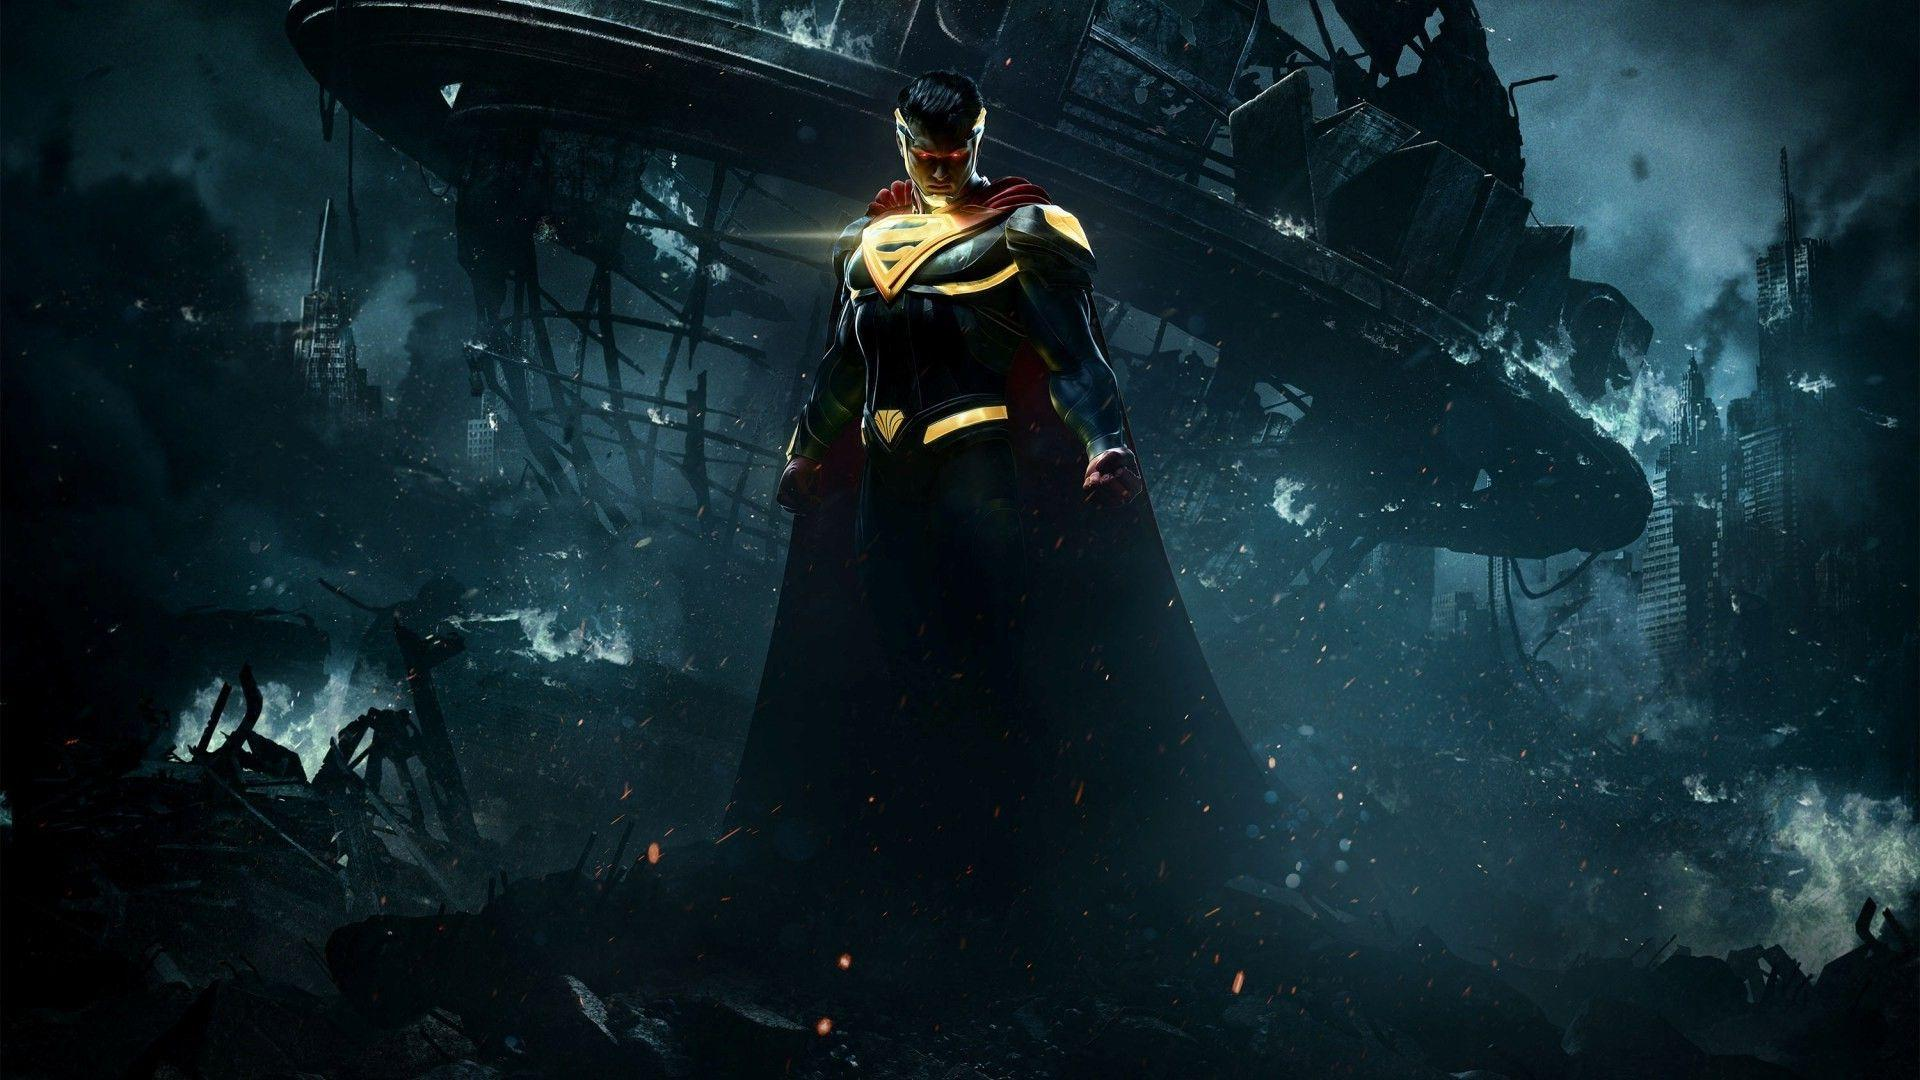 Superman Injustice 2 Story 1080p HD Wallpapers